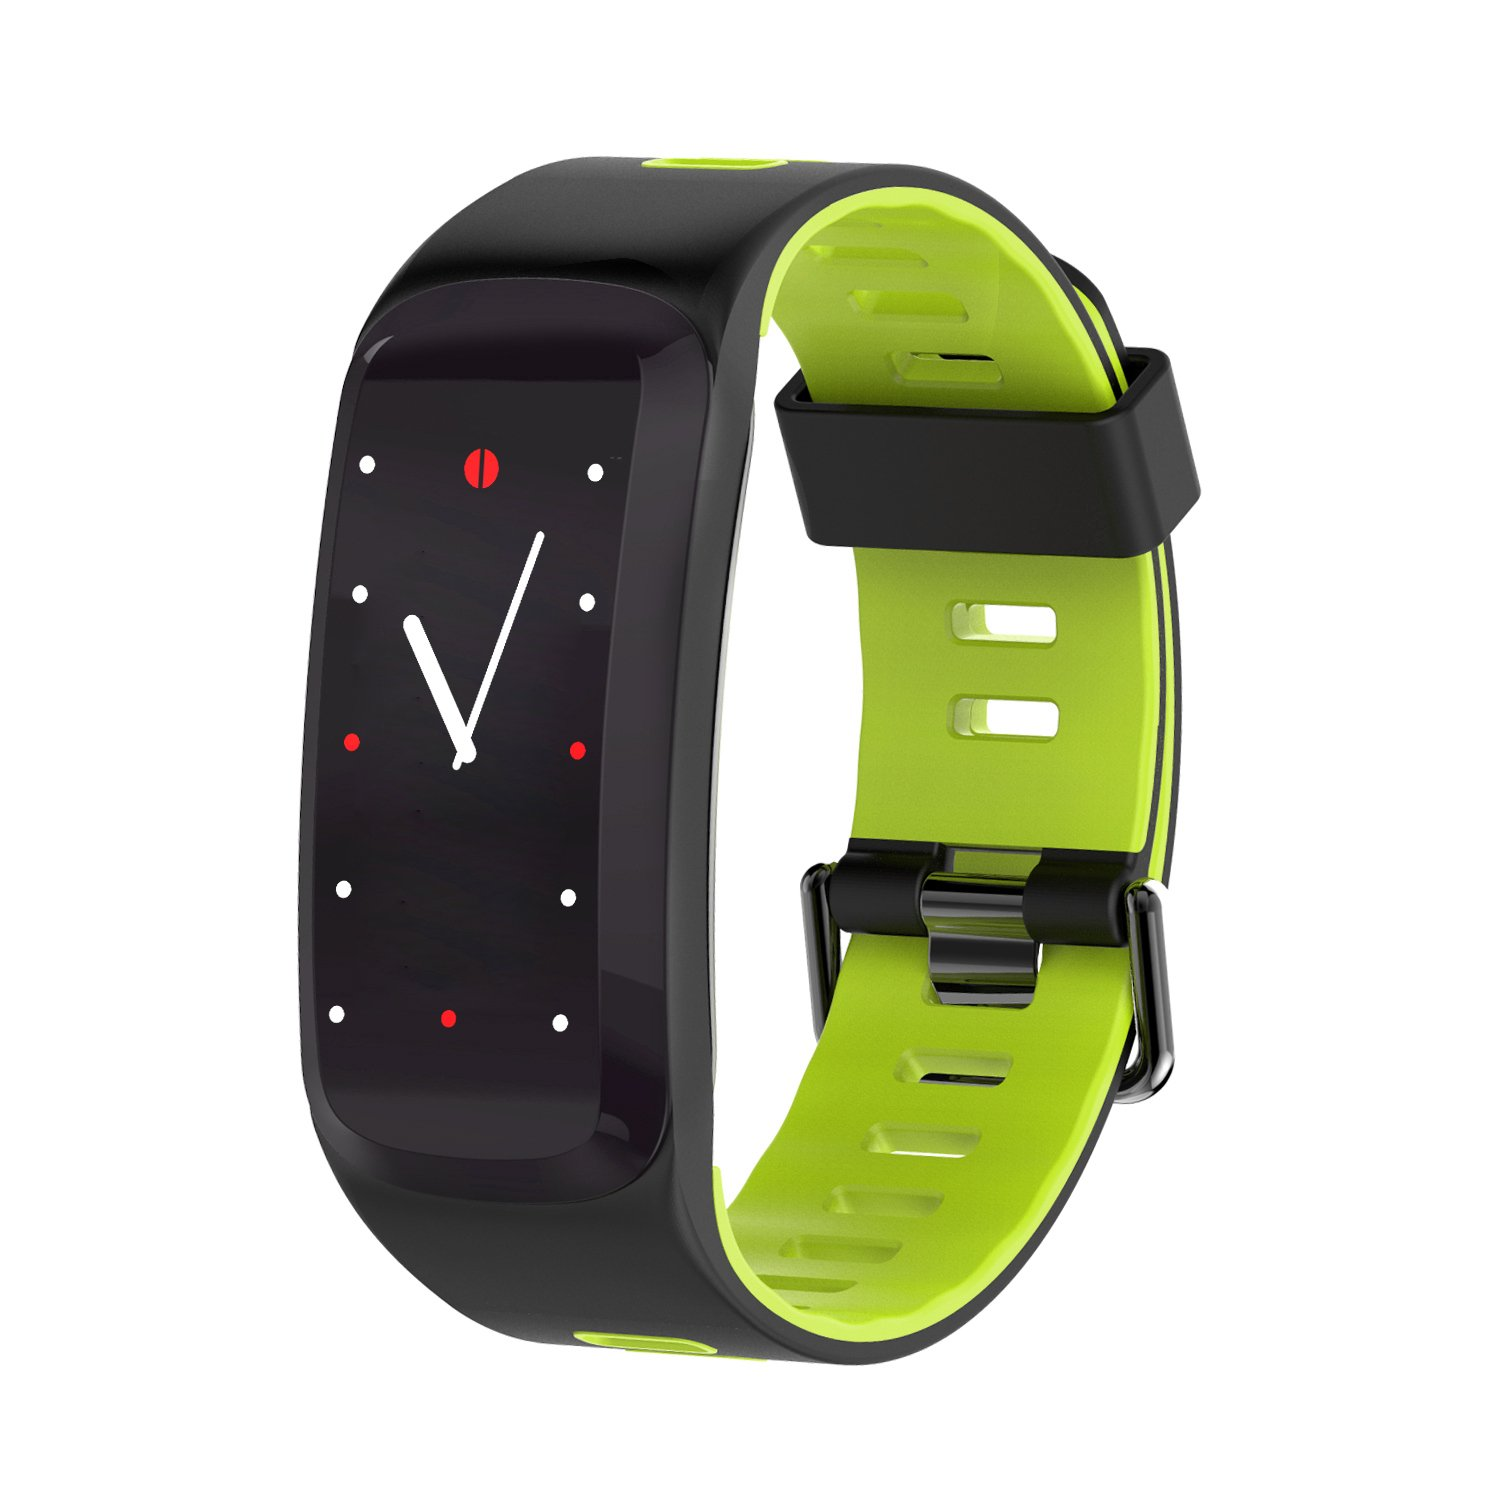 Byoung Activity Tracker Color Screen,Smart Watch IP68 Waterproof Fitness Watch with Heart Rate Monitor, Sleep Monitors, Calorie, Pedometer, Blood Pressure Sport Smartwatch for Men Women Kids Gifts